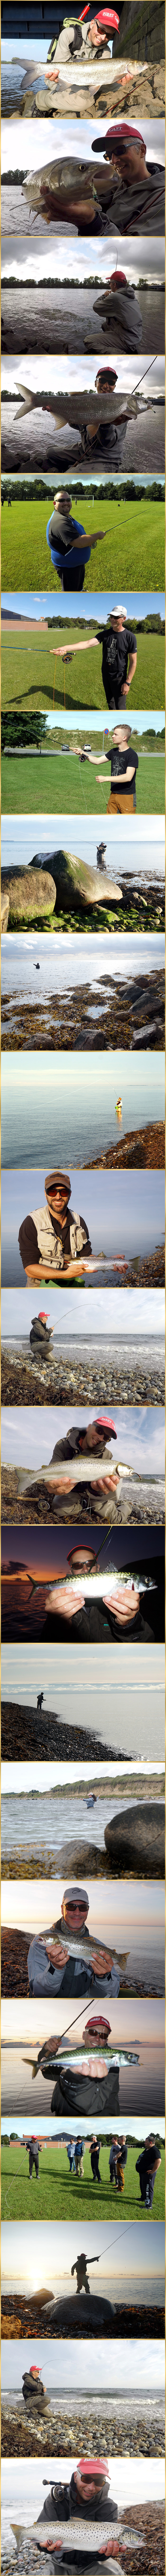 sea running brown trout and asp